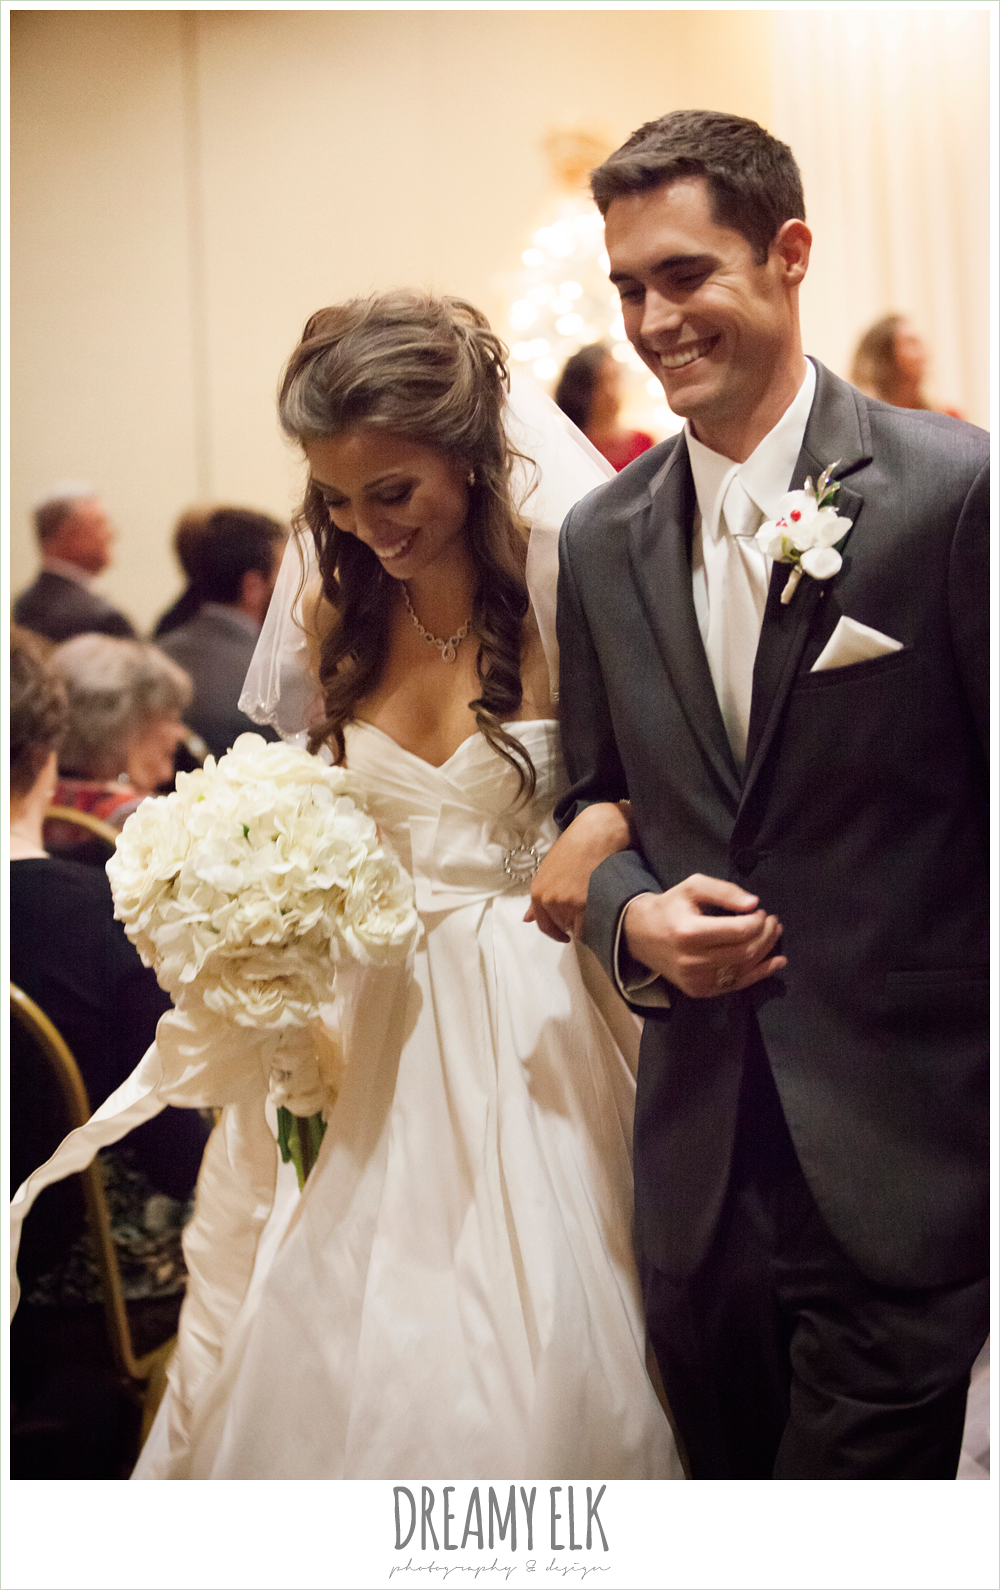 bride and groom during ceremony, christmas wedding {dreamy elk photography and design} photo